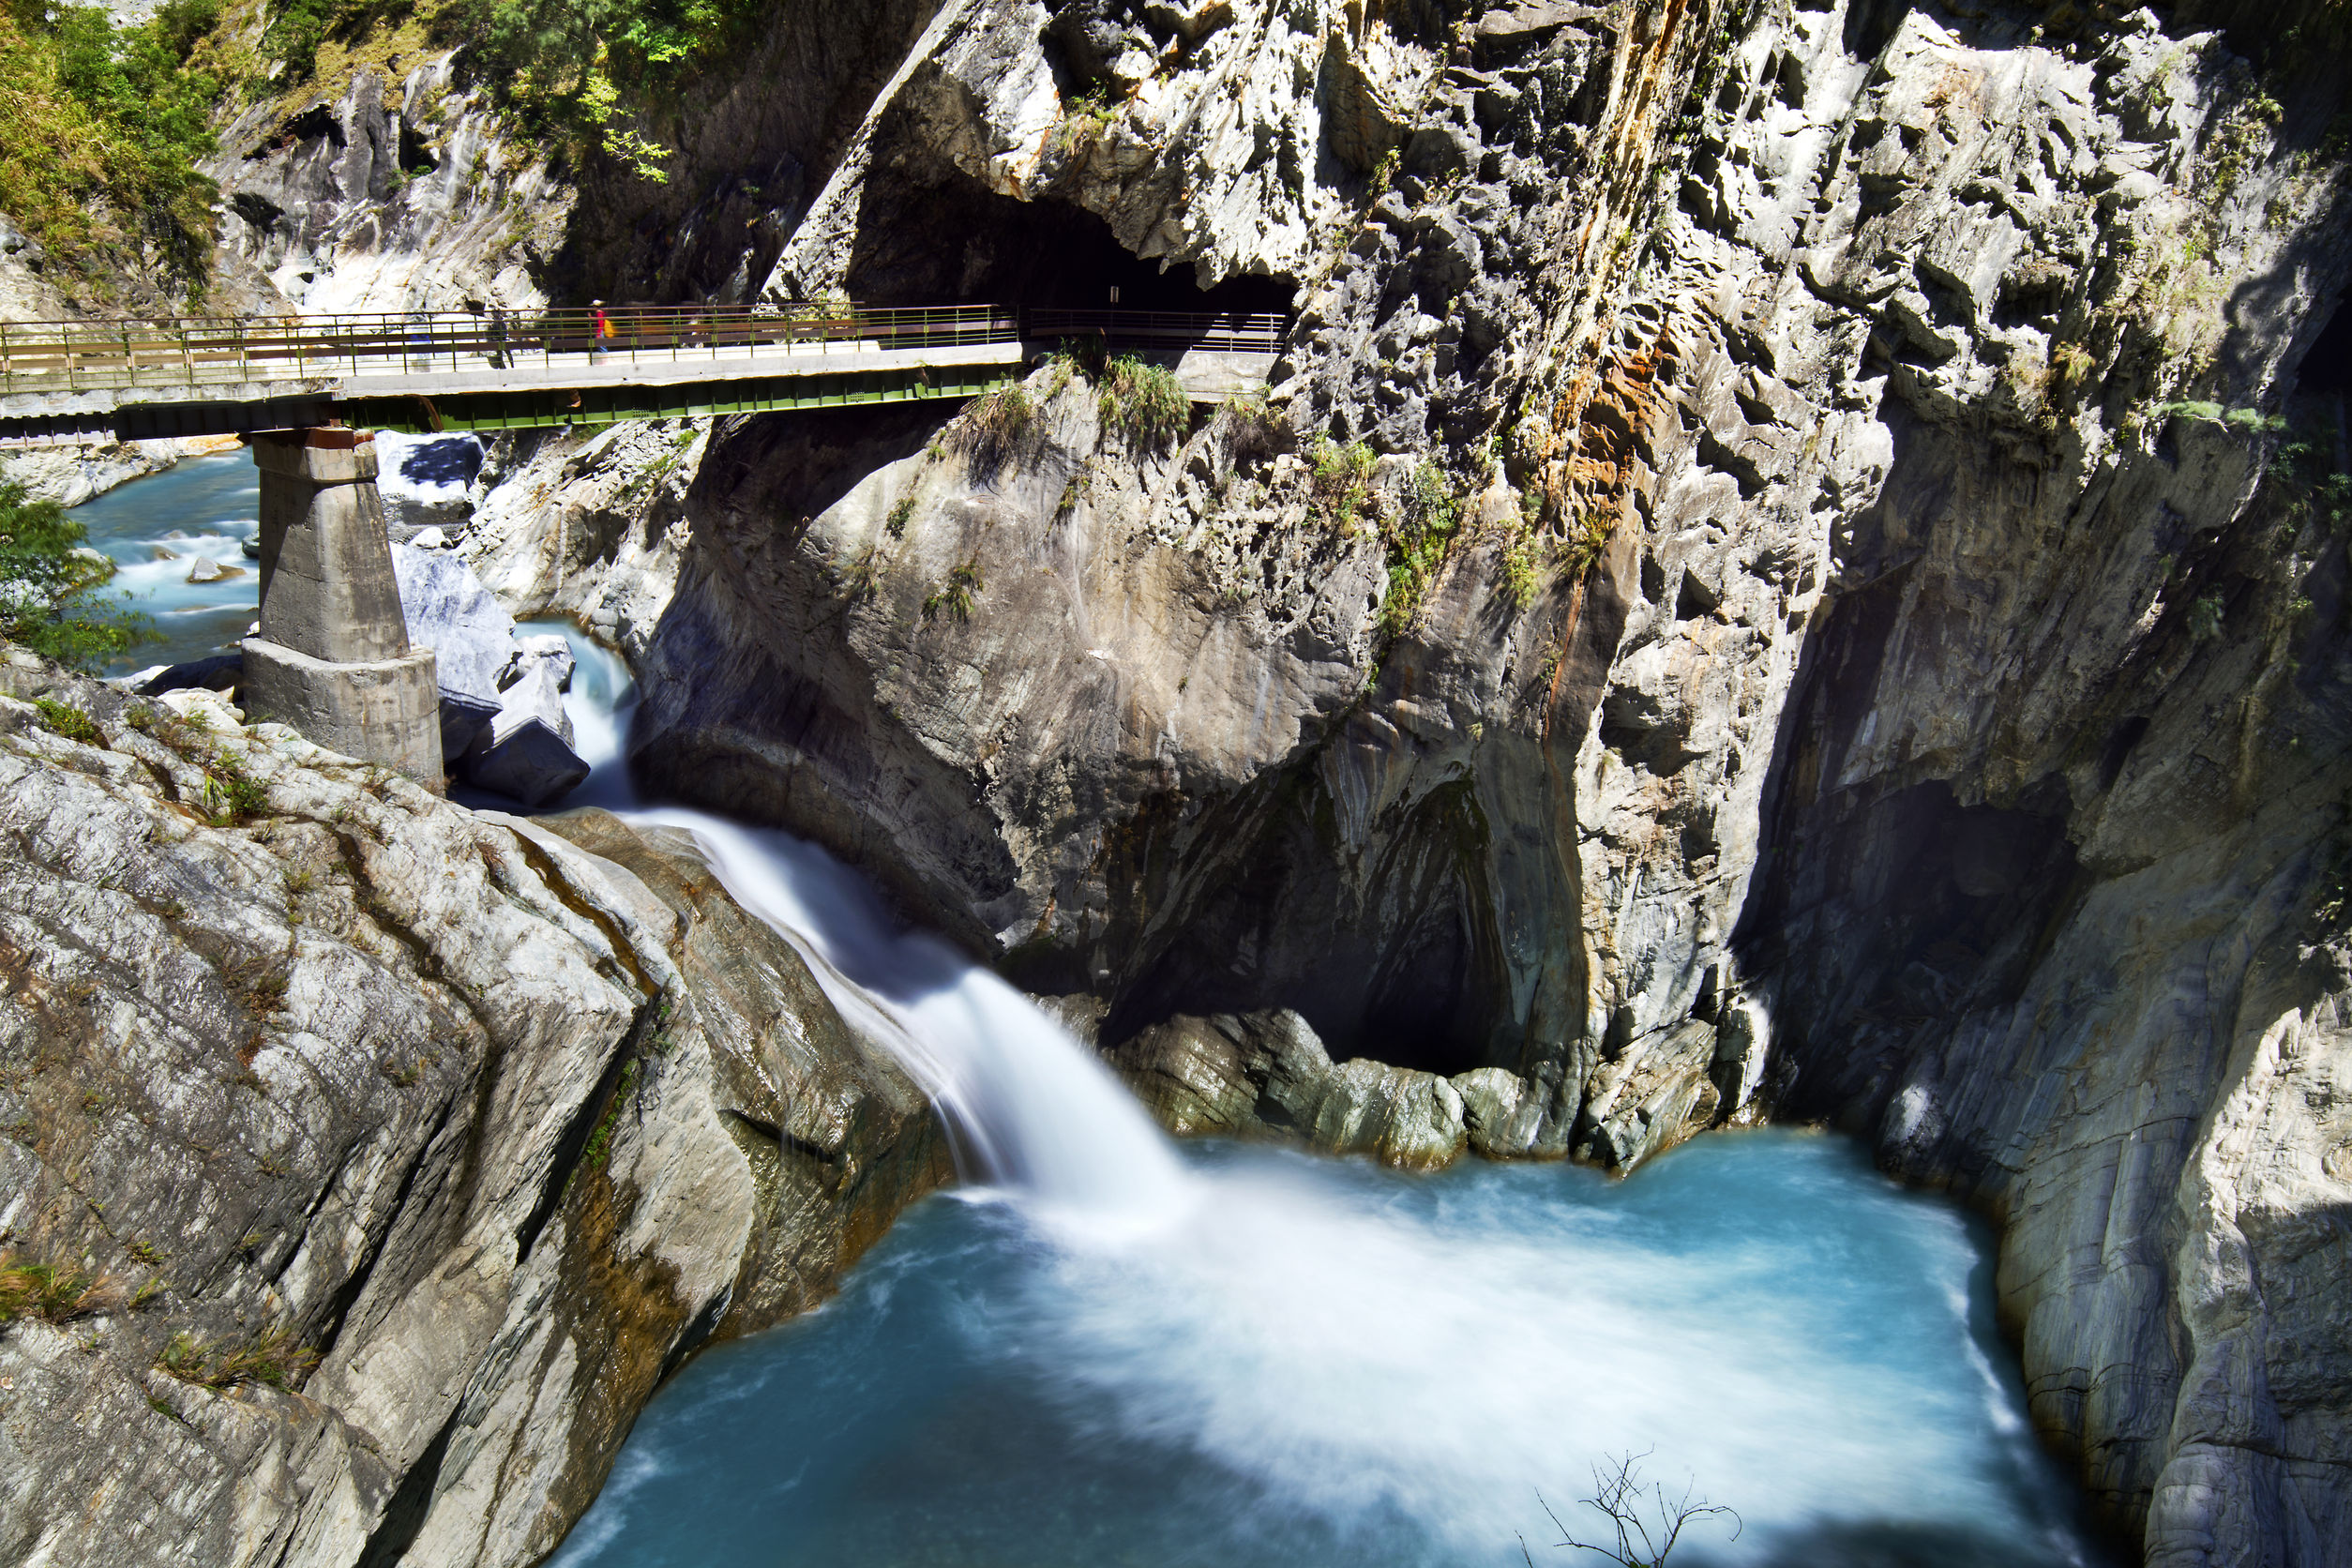 【Hualien Travel Guide】Wild Taiwan Guide: Explore Taroko Gorge and East Rift Valley